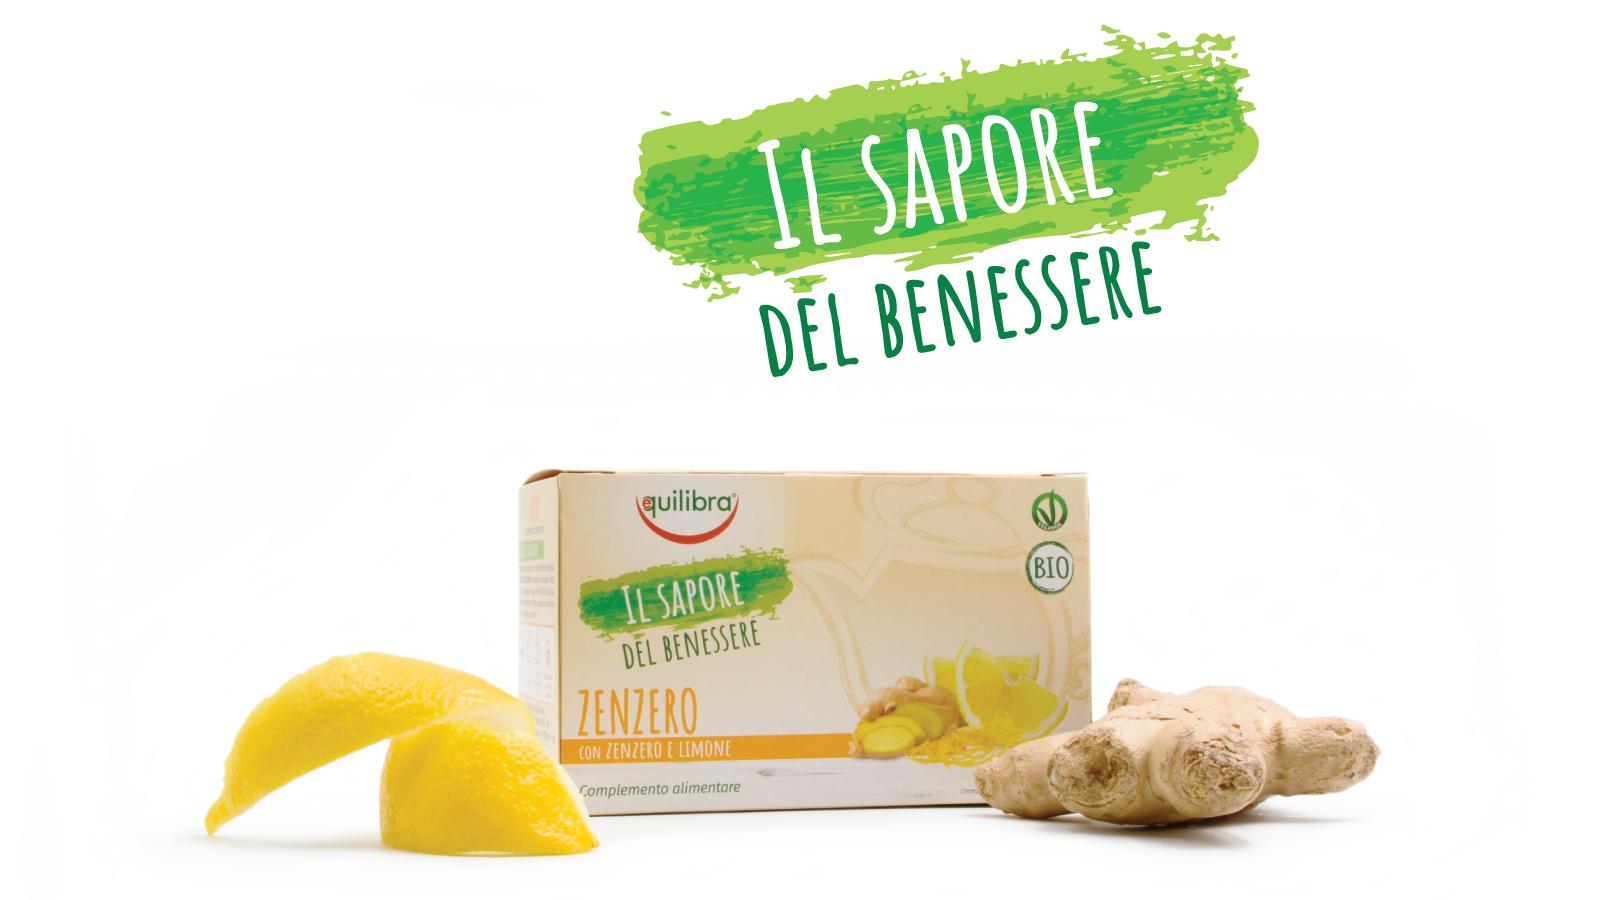 Packaging Design Equilibra Tisane Il Sapore del Benessere